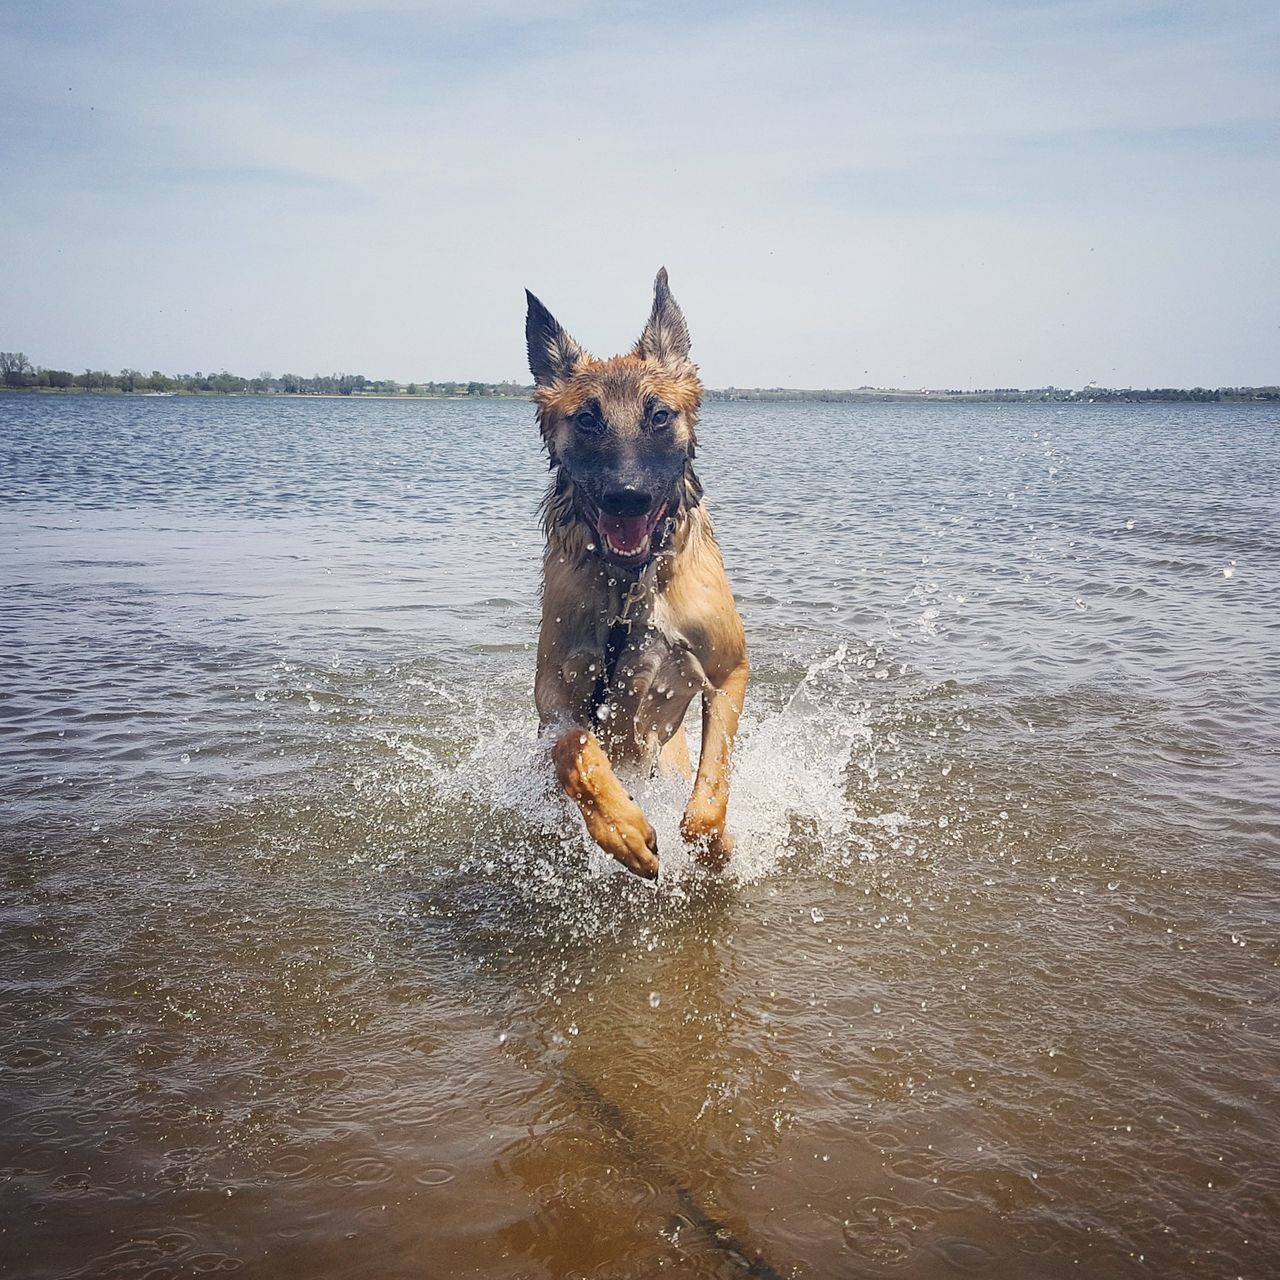 dog, pets, domestic animals, water, german shepherd, sky, sea, mammal, animal themes, outdoors, day, portrait, nature, no people